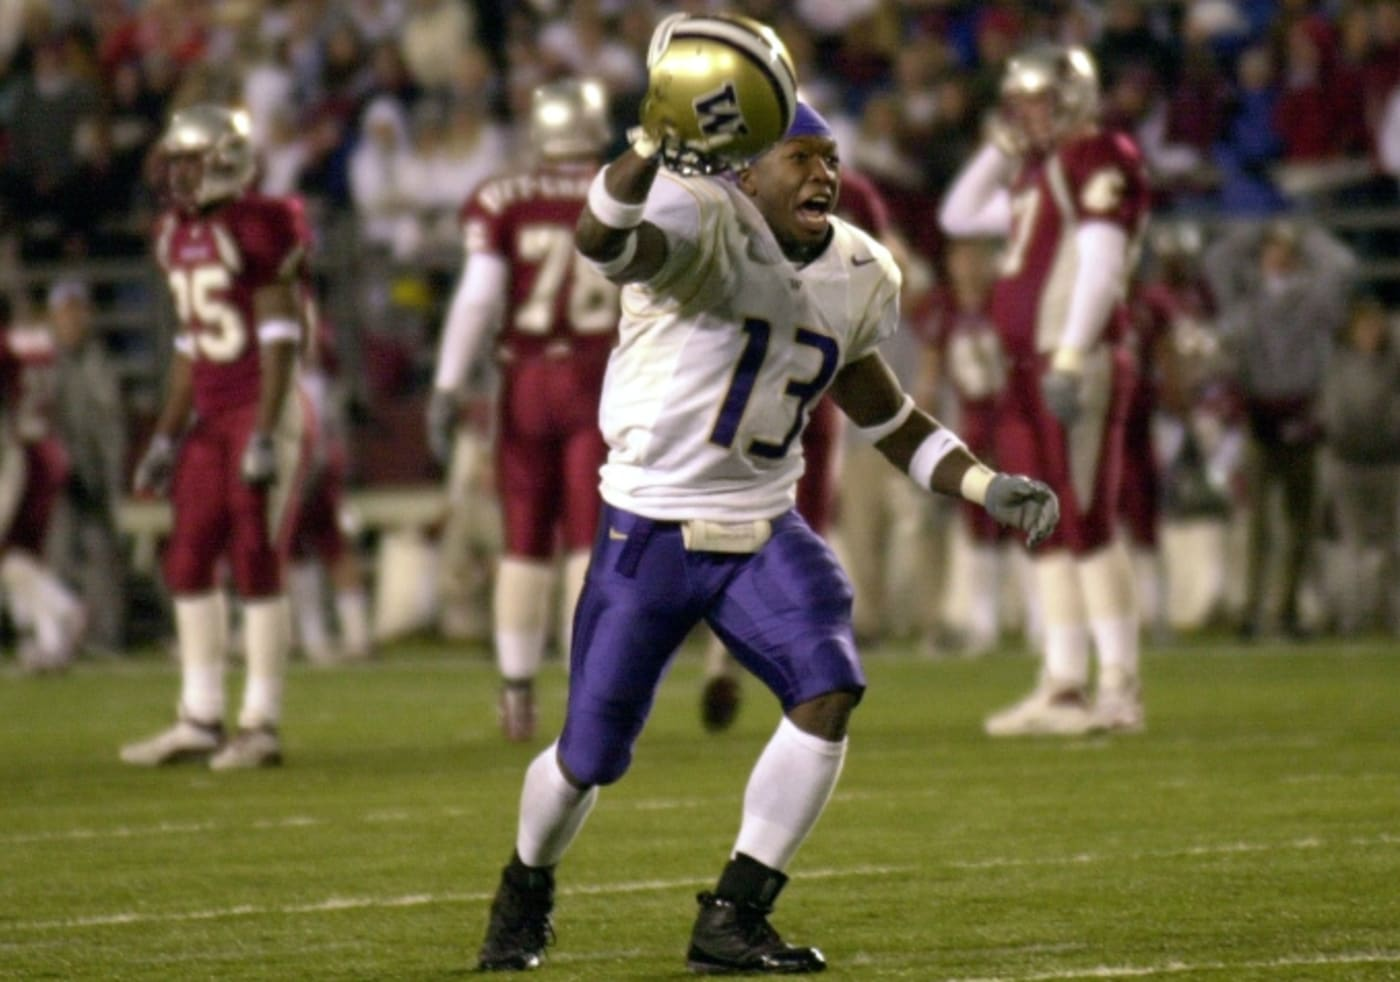 Nate Robinson playing football.